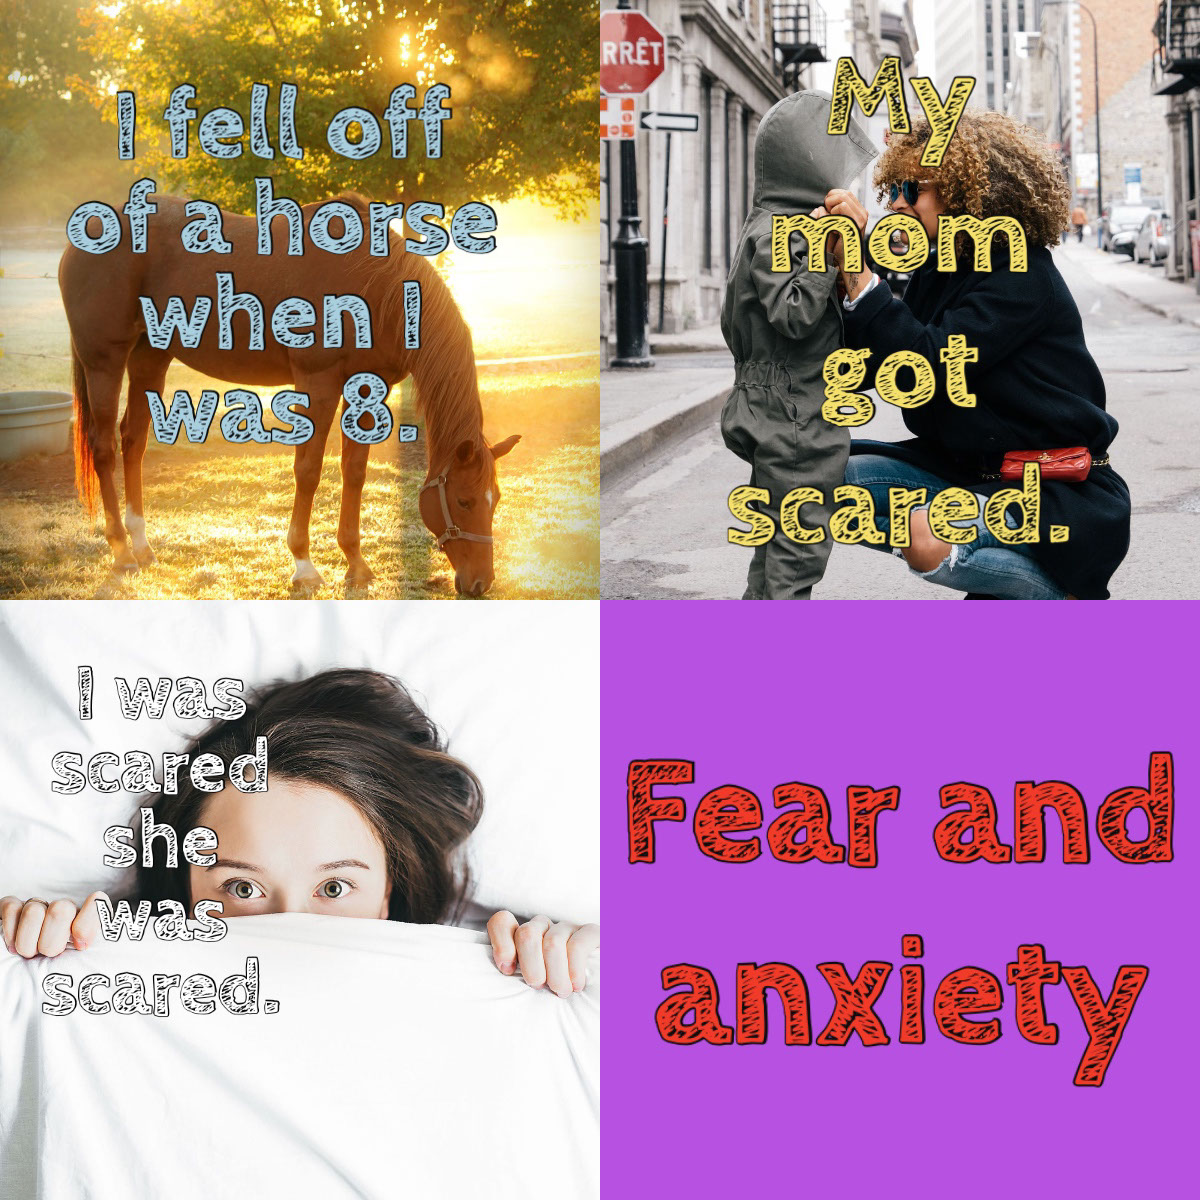 Fear and anxiety Fear and anxiety   My mom got scared.   I fell off of a horse when I was 8.   I was scared she was scared.